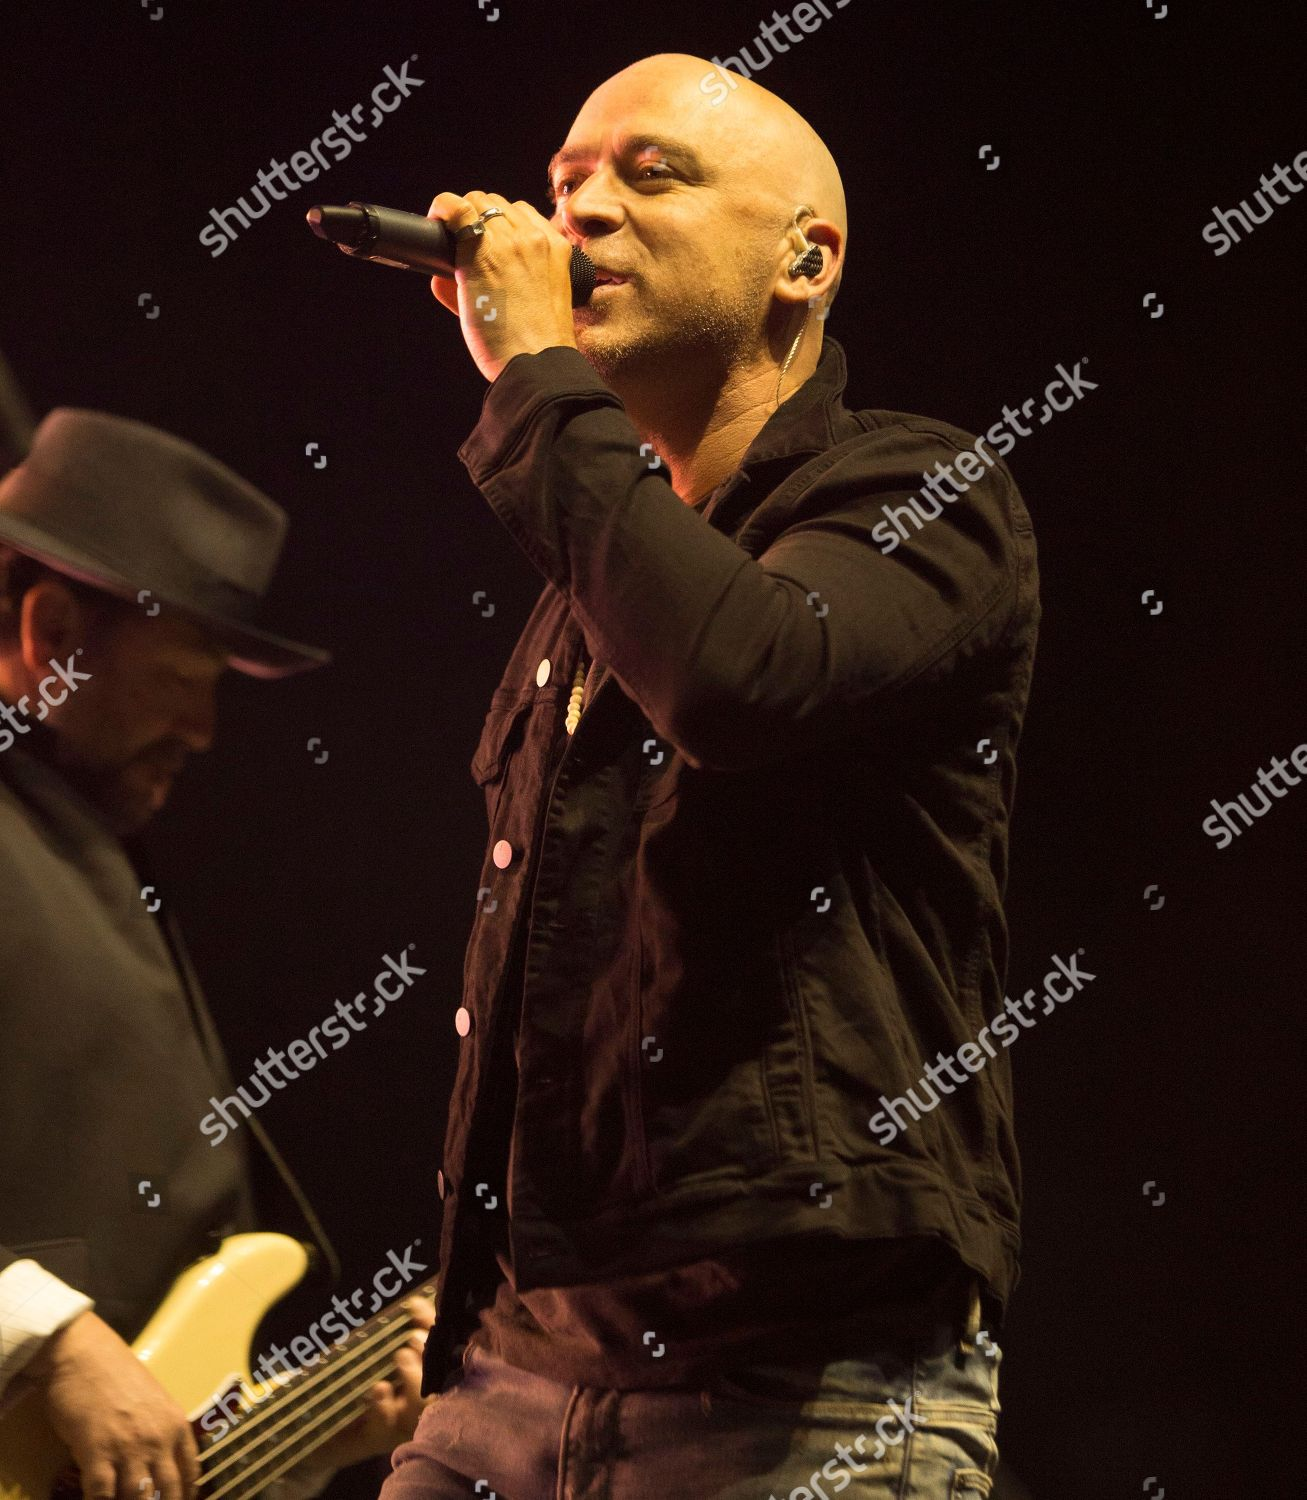 Ed Kowalczyk band Live performs concert during Editorial